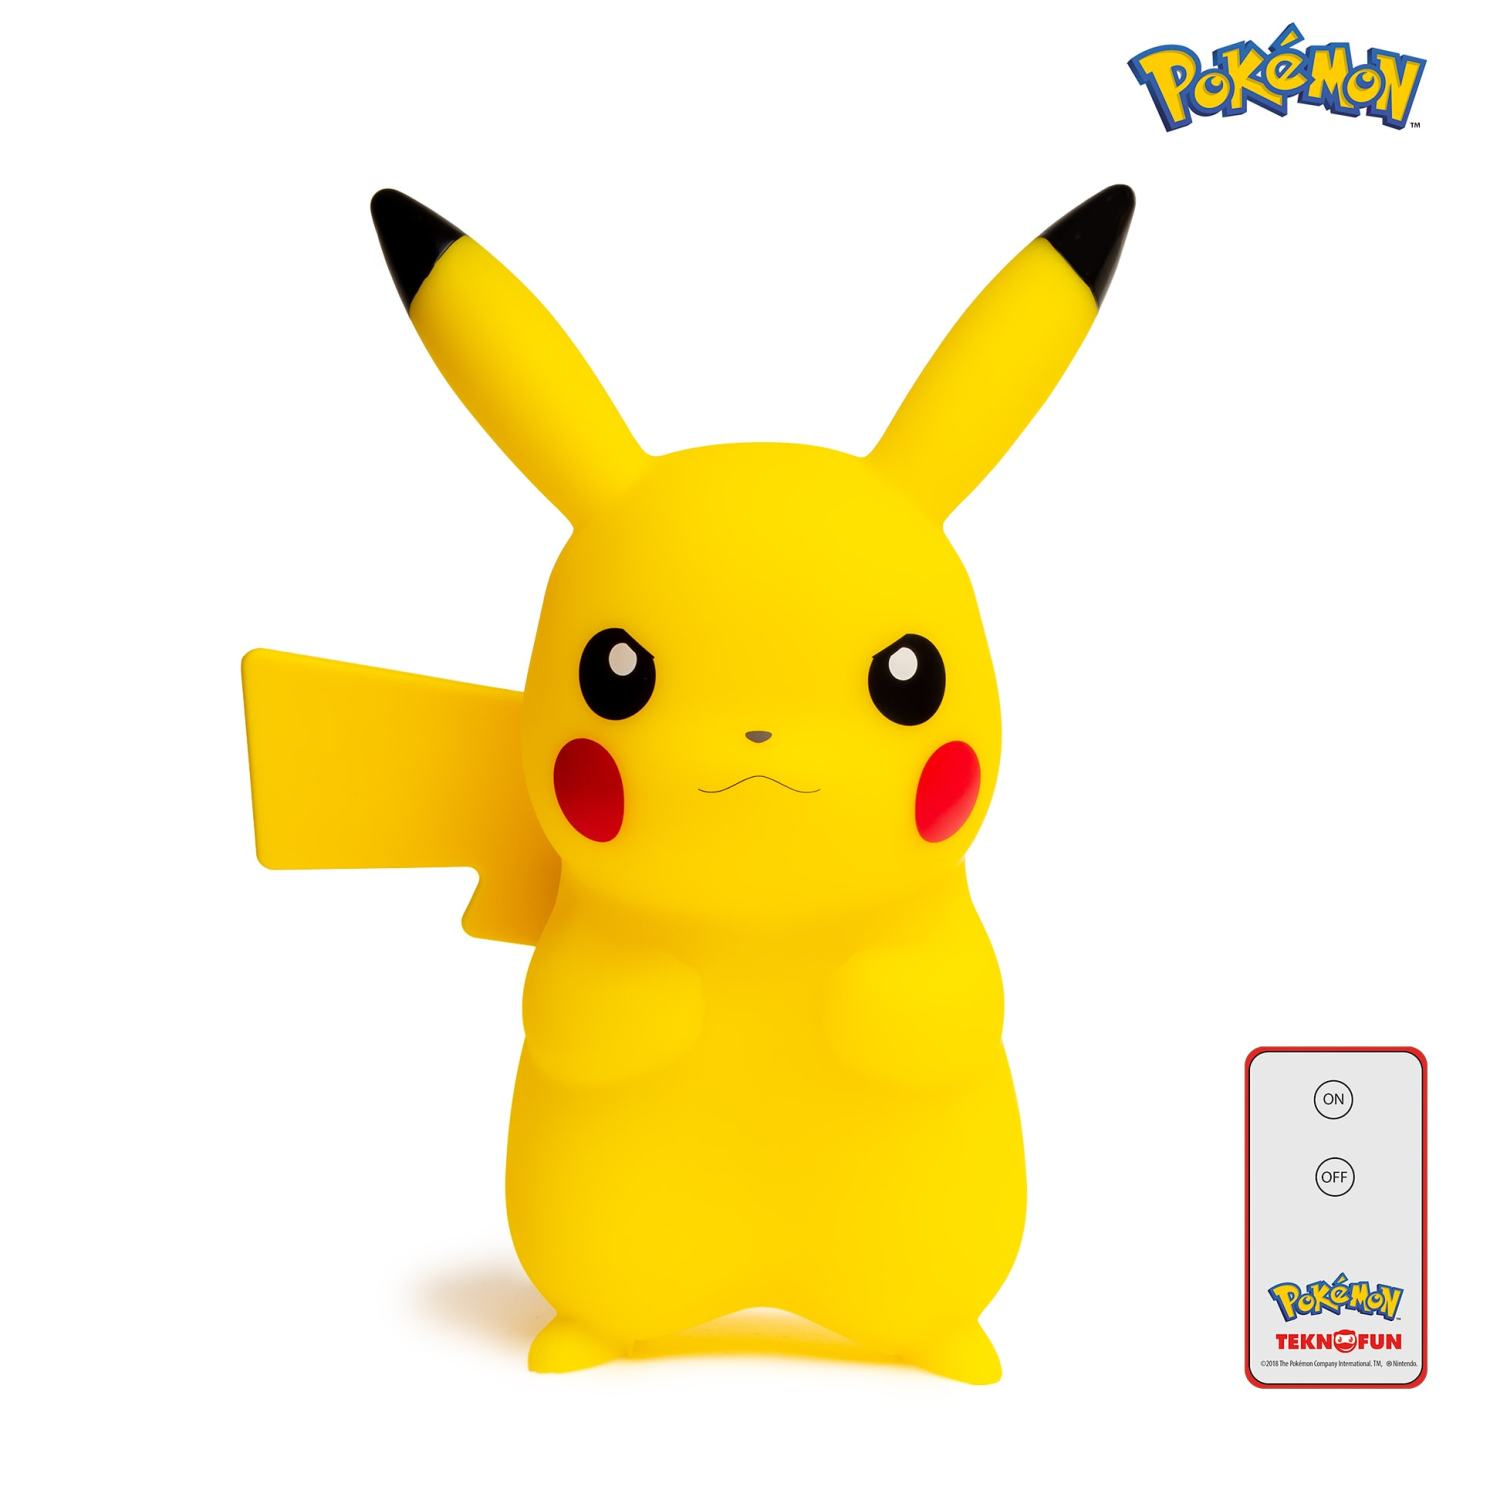 Pokémon Pikachu Light-up 3D figure 10in 2